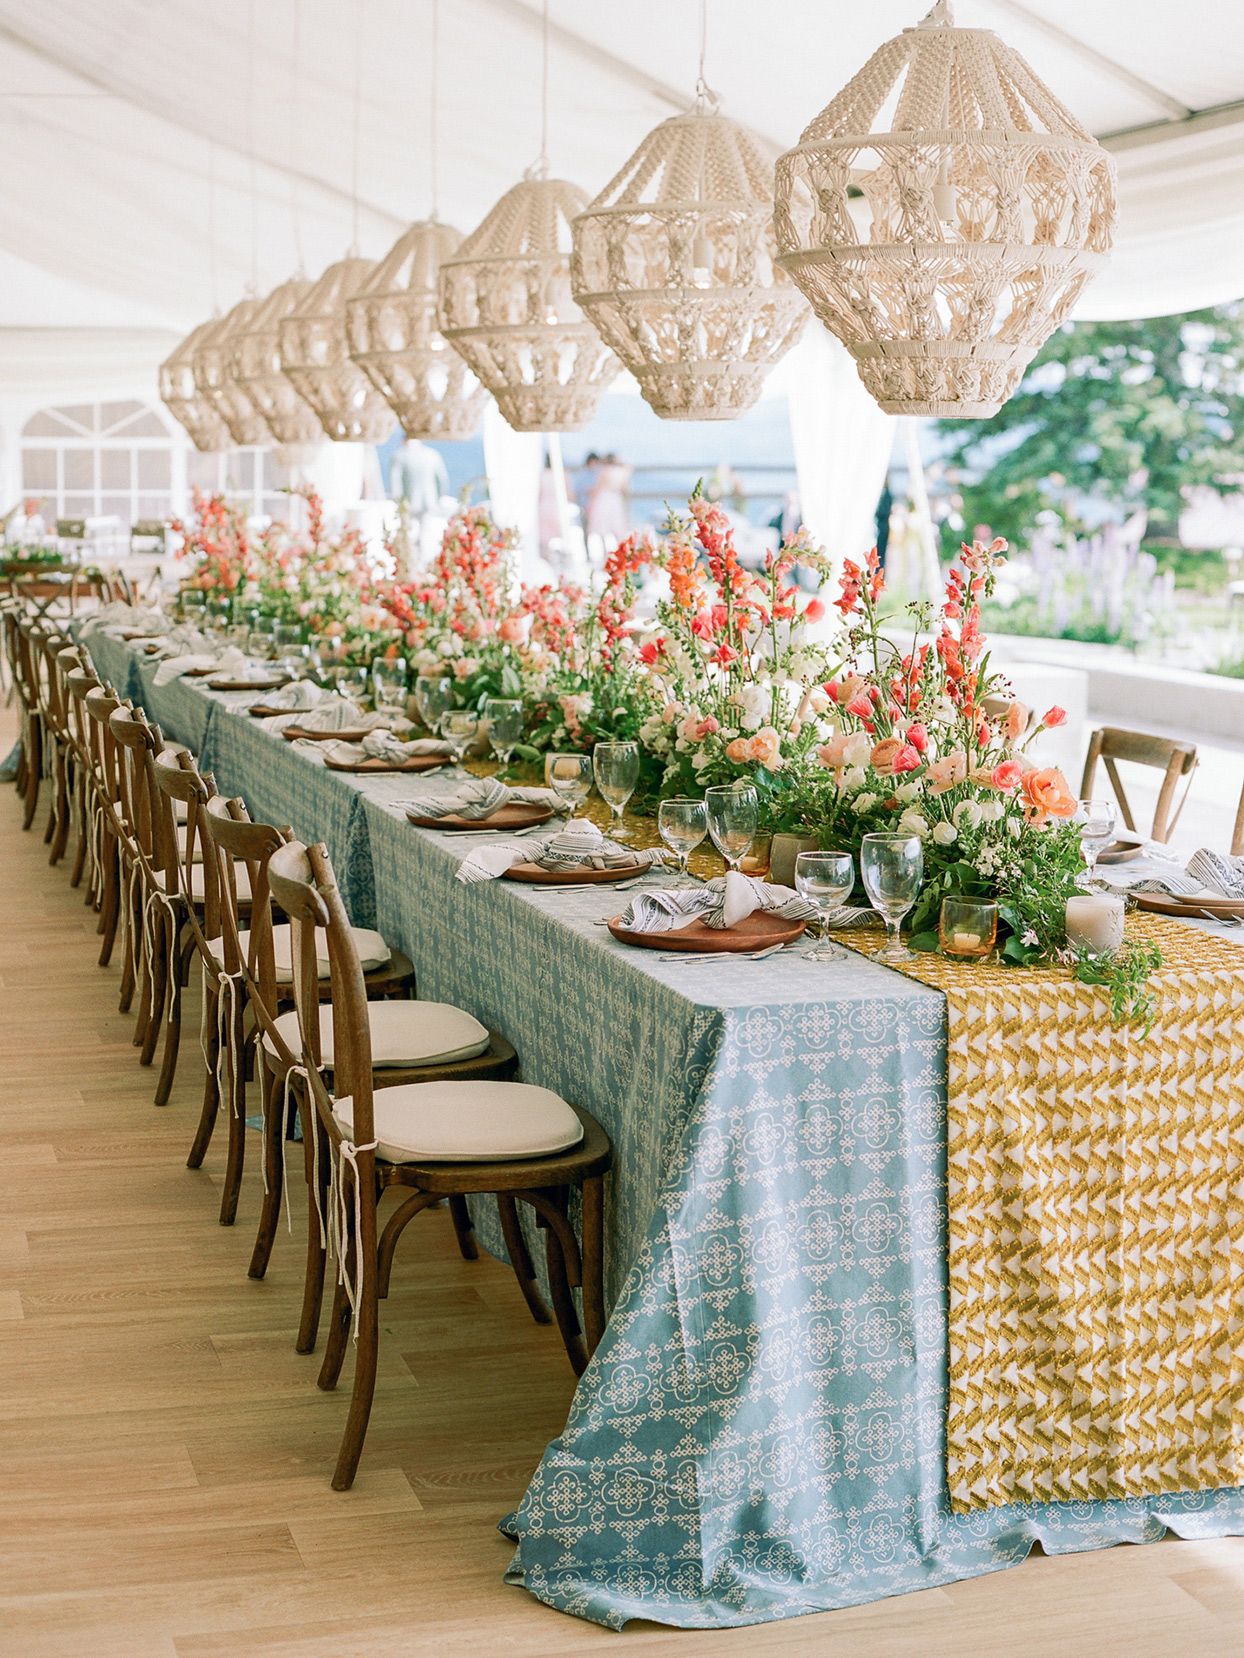 logan conor wedding colorful reception tables with hanging wicker lights